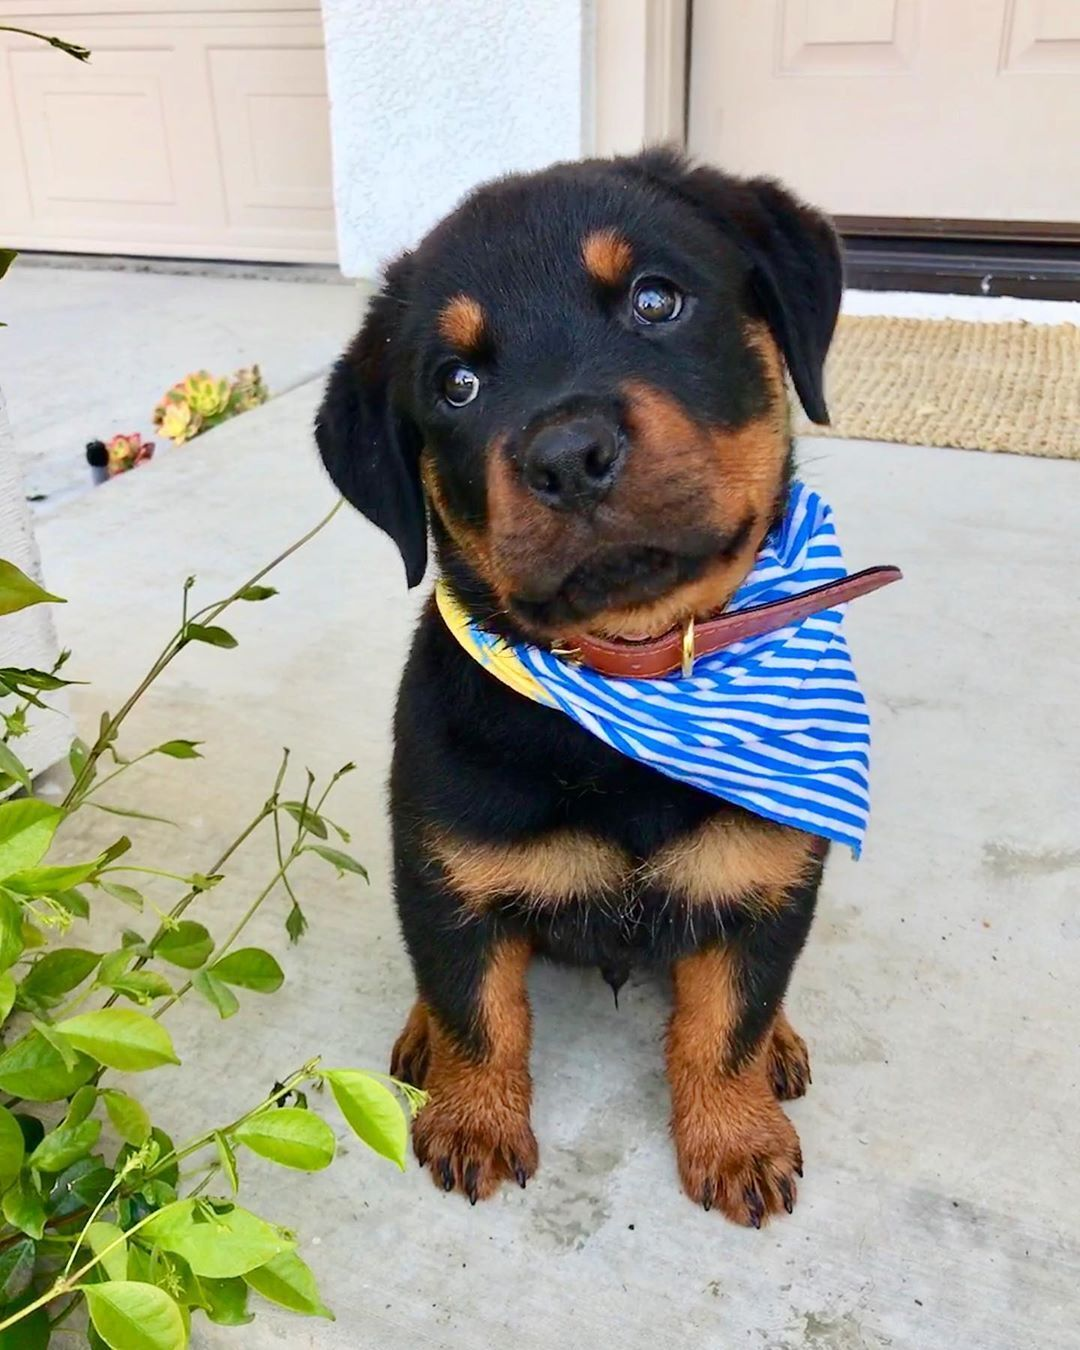 Rottweiler Tails In 2020 Baby Rottweiler Cute Dogs And Puppies Rottweiler Puppies